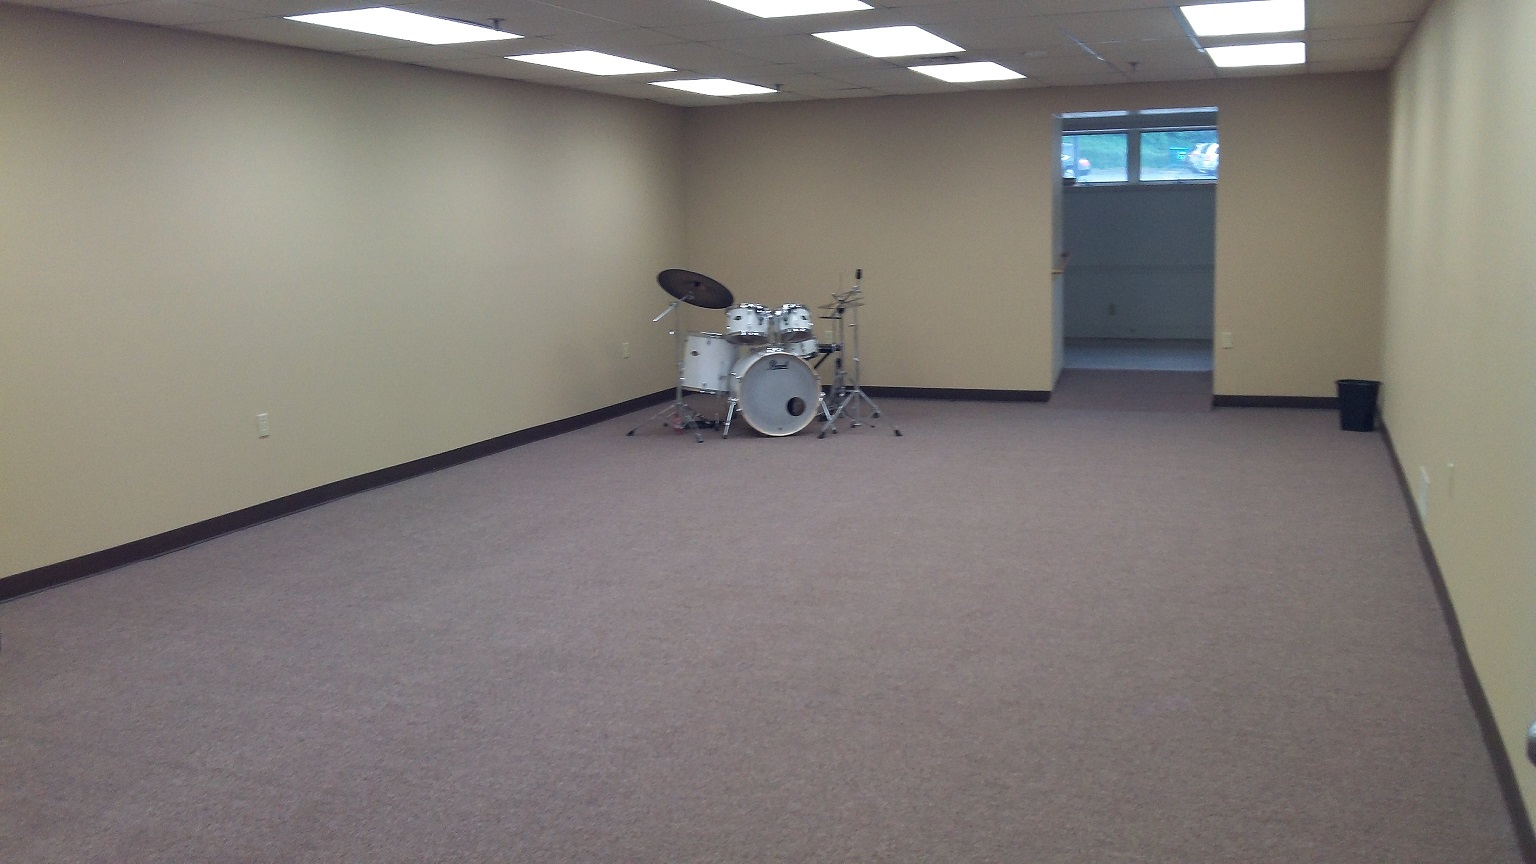 Rehearsal Area with 700 Square Feet of Space for Larger Ensembles